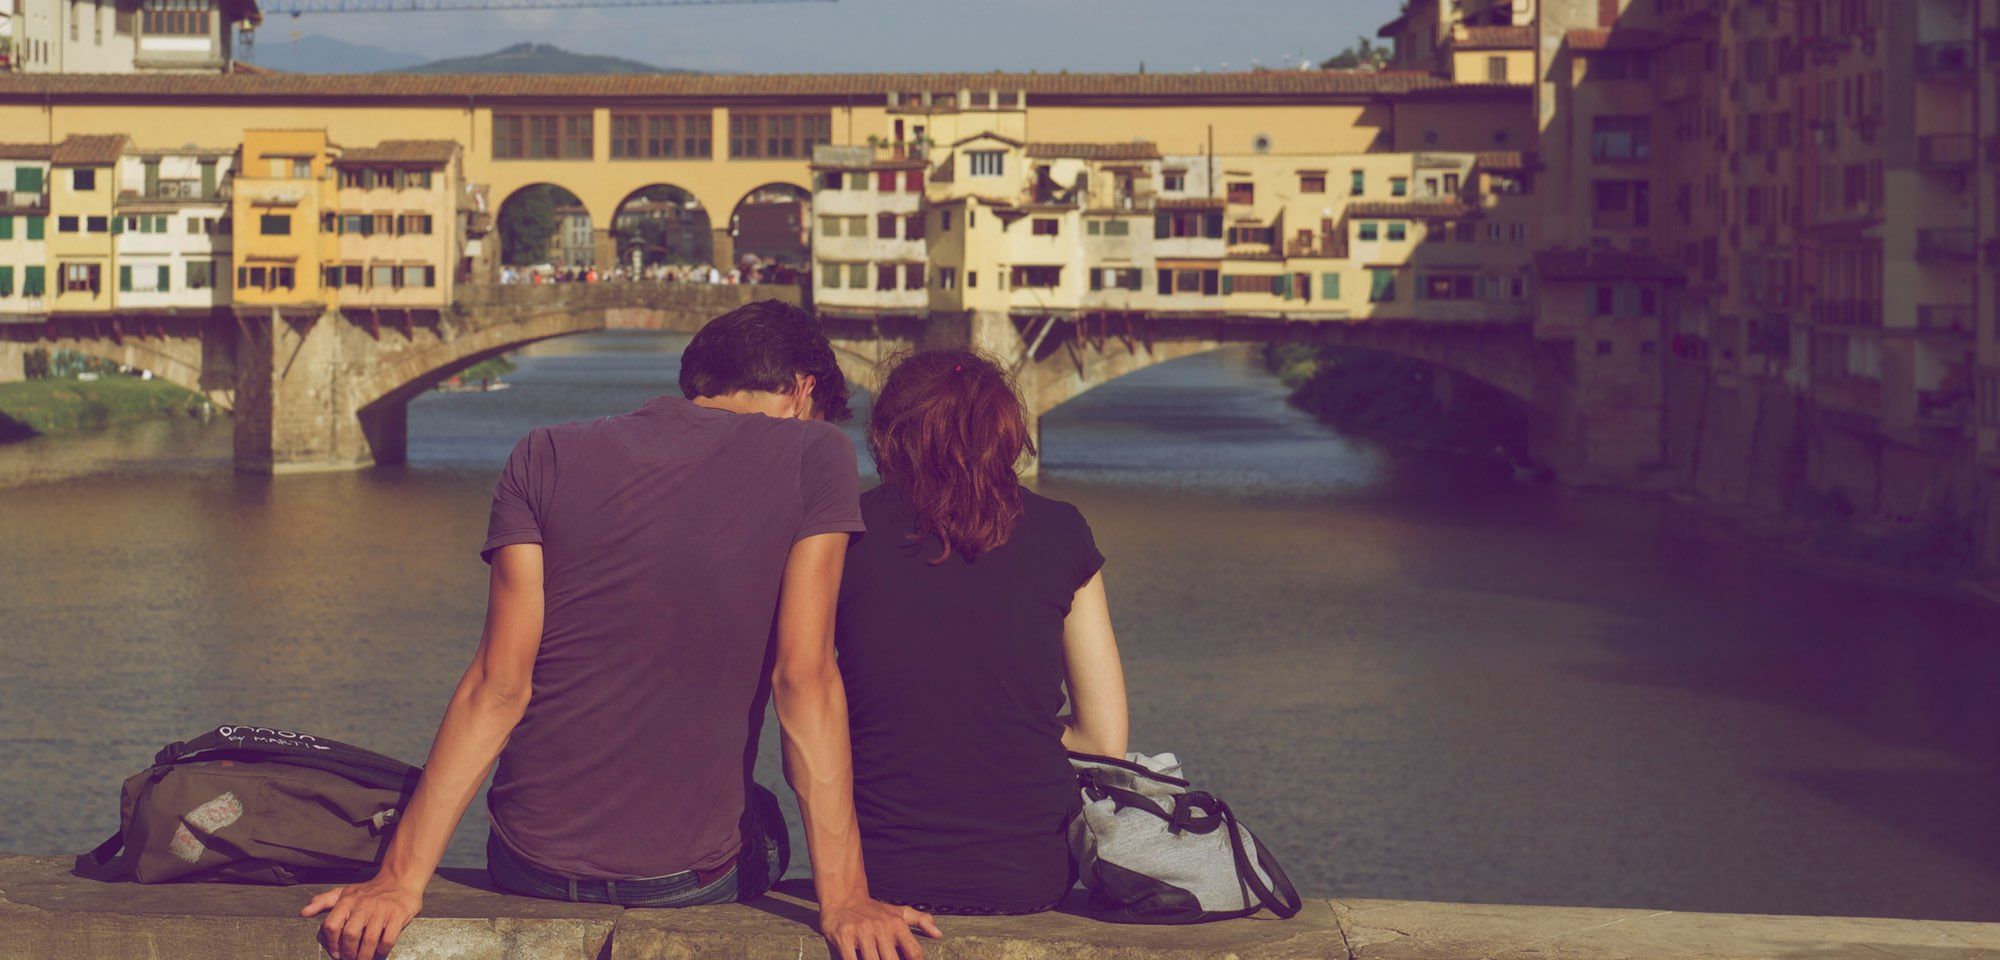 Buying life insurance with your spouse